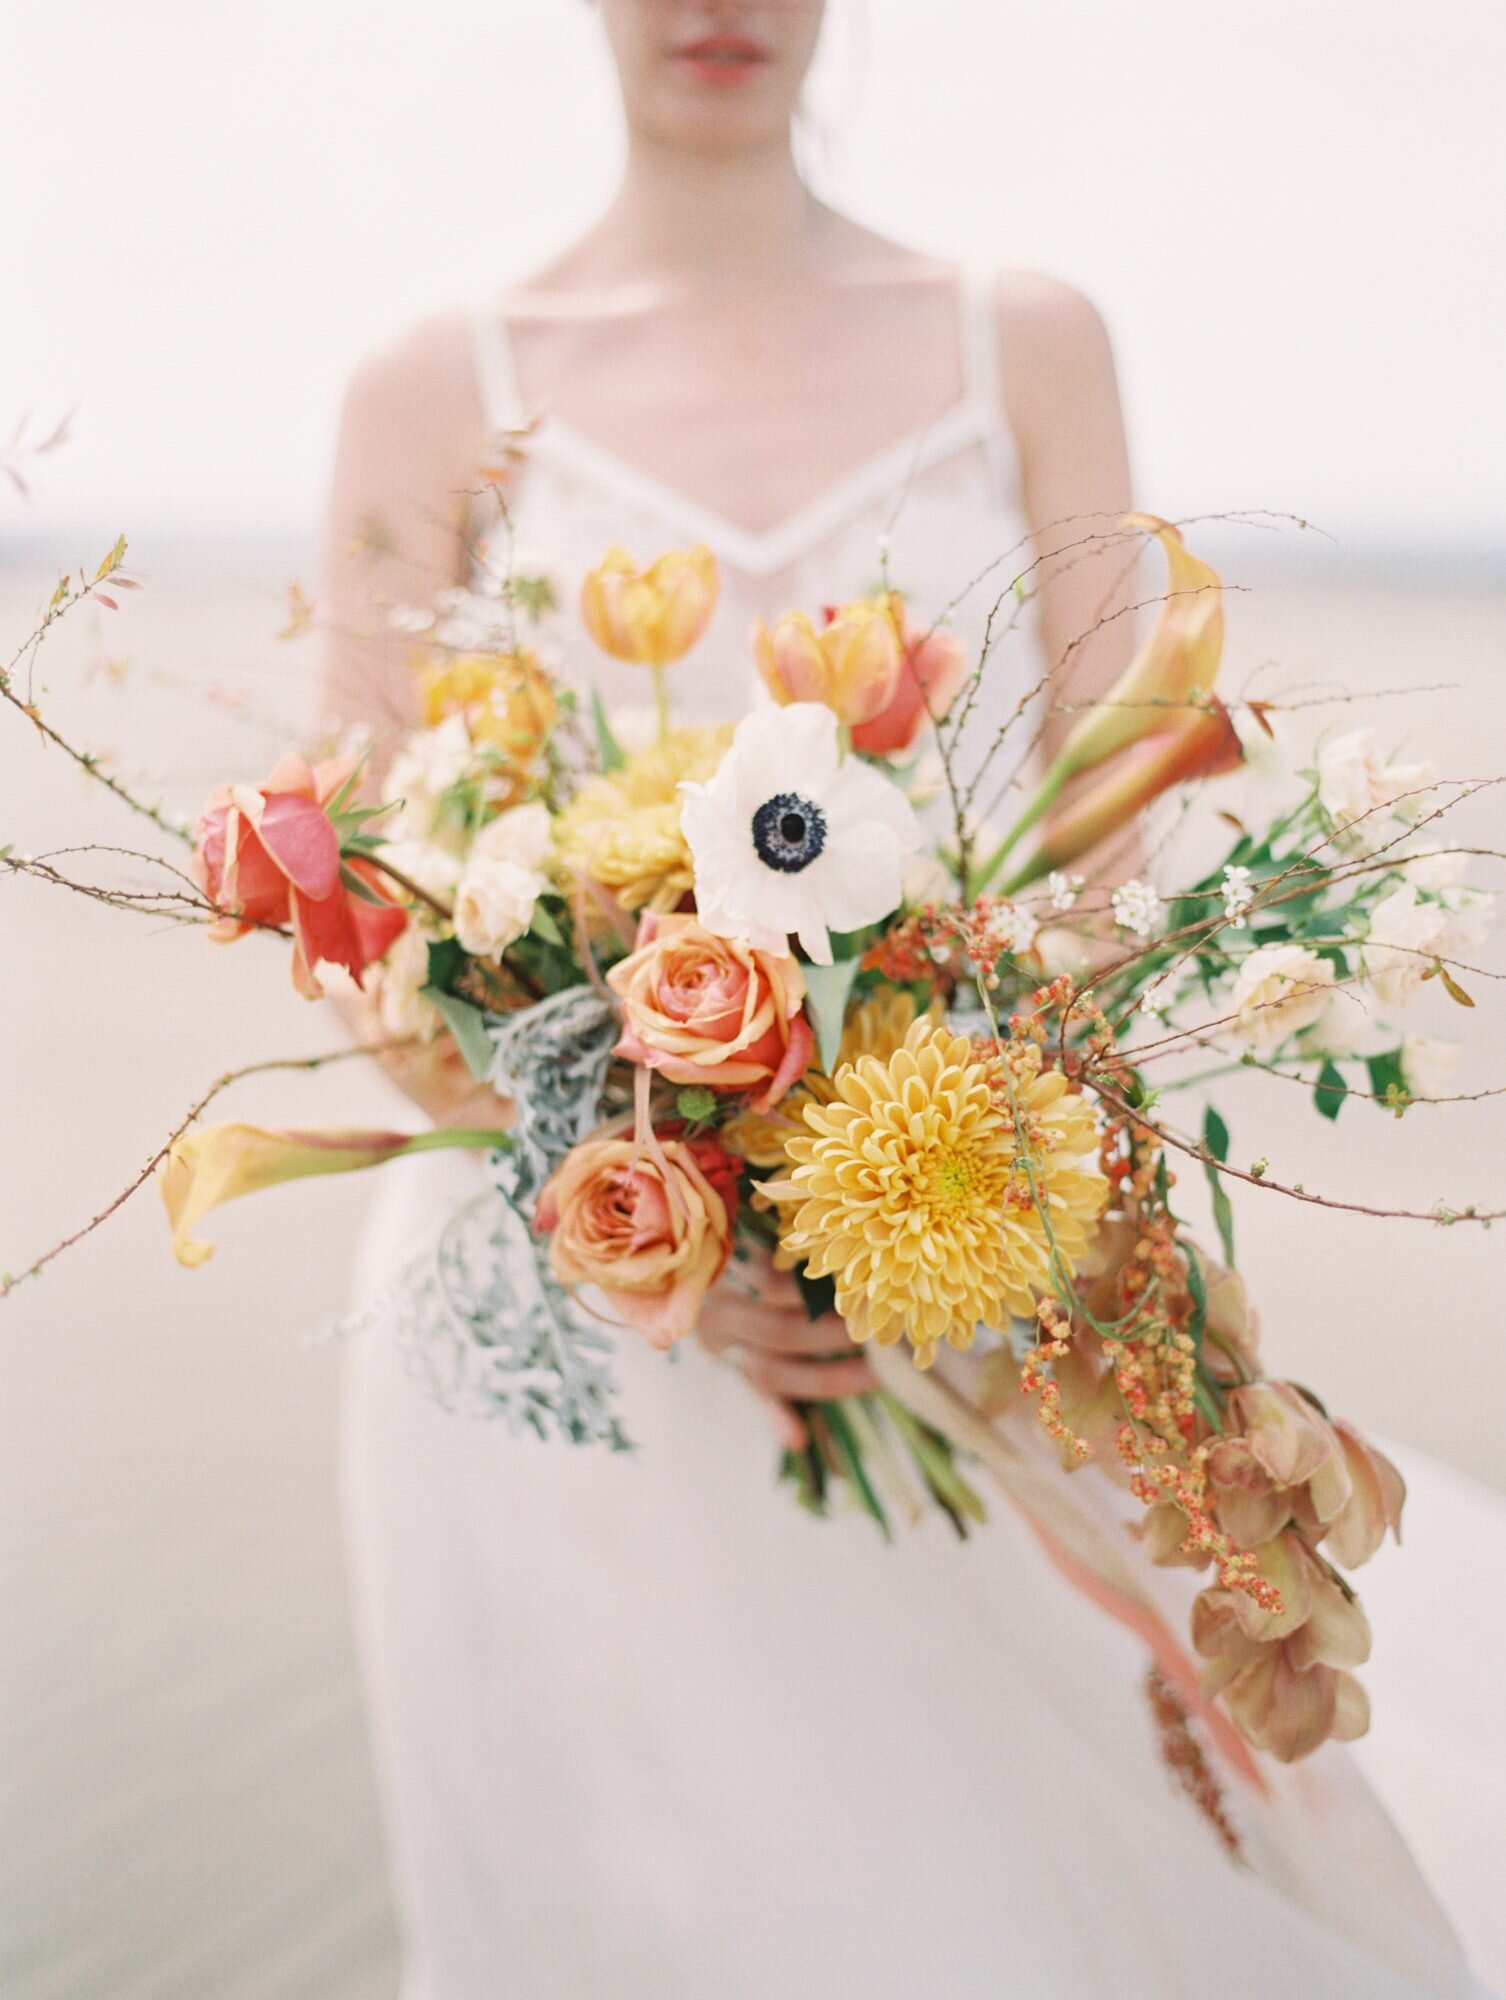 ideas for you to choose lilies wedding bouquet 4 - Ideas for You to Choose Lilies Wedding Bouquet